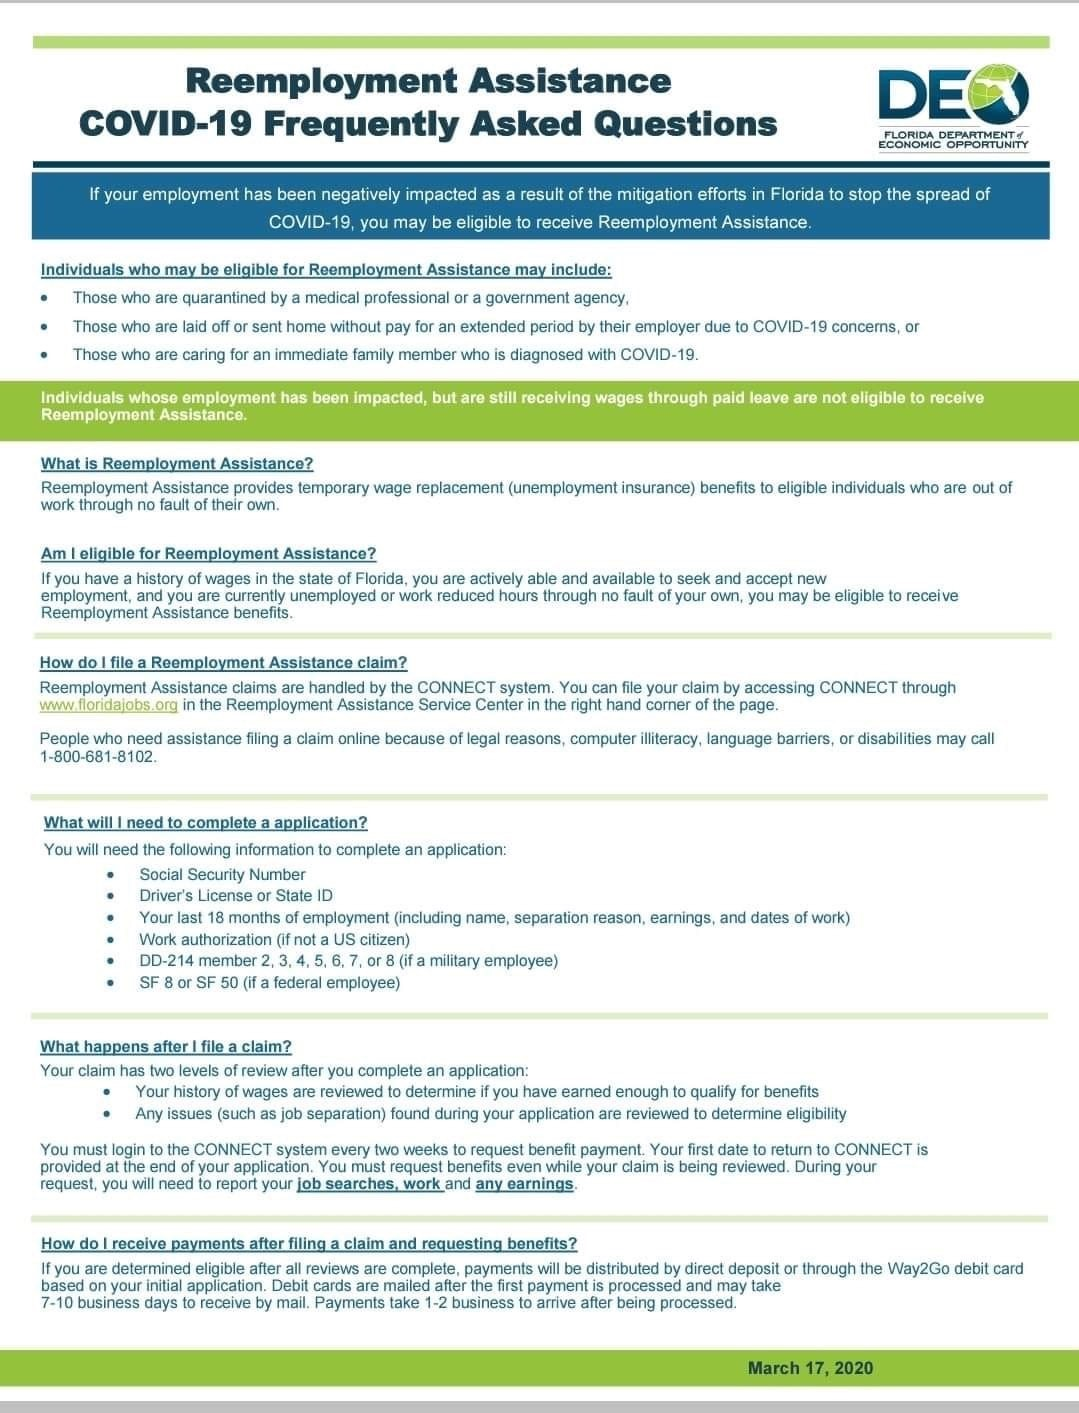 Reemployment Assistance COVID-19 Frequently Asked Questions